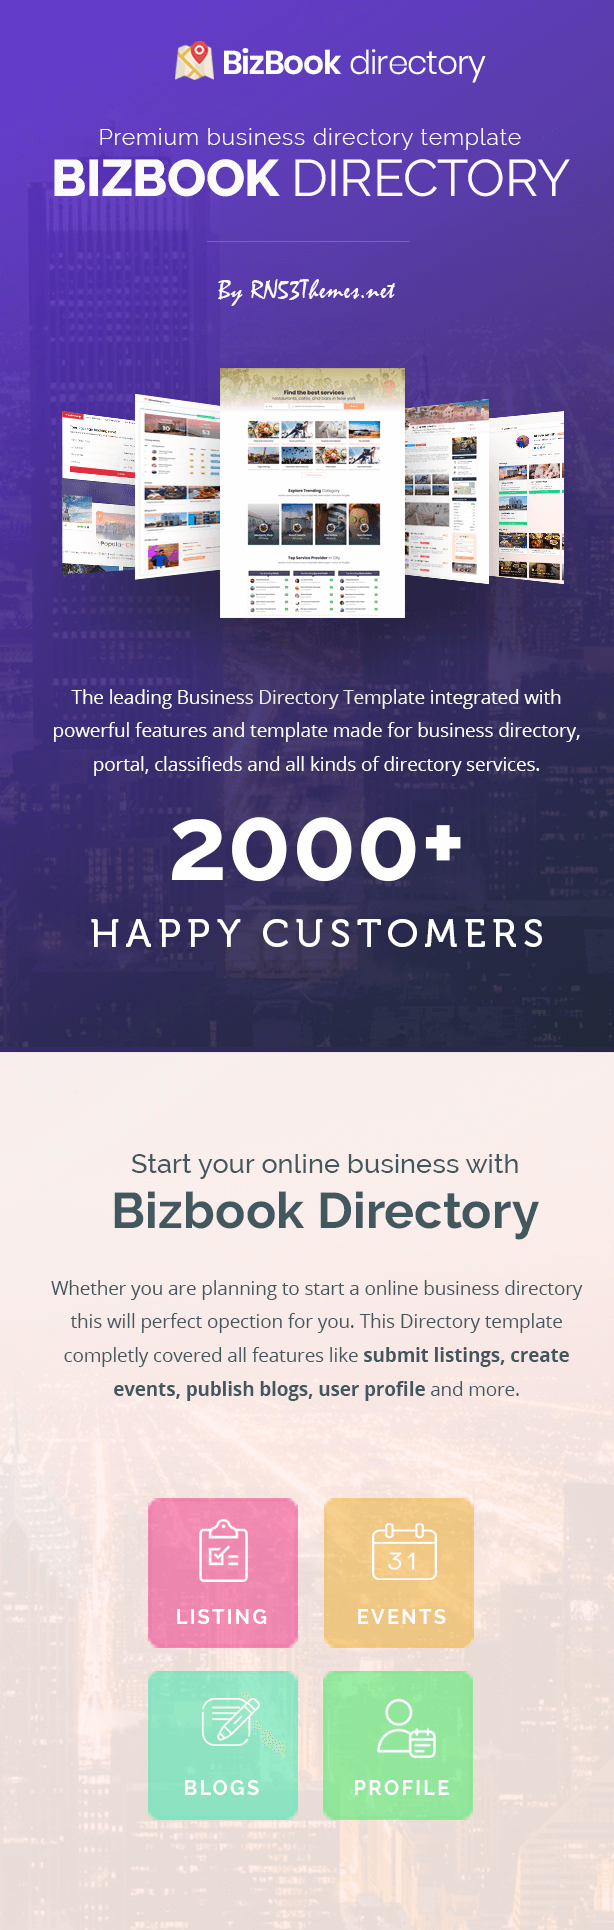 BizBook - Directory & Listings Template - 1